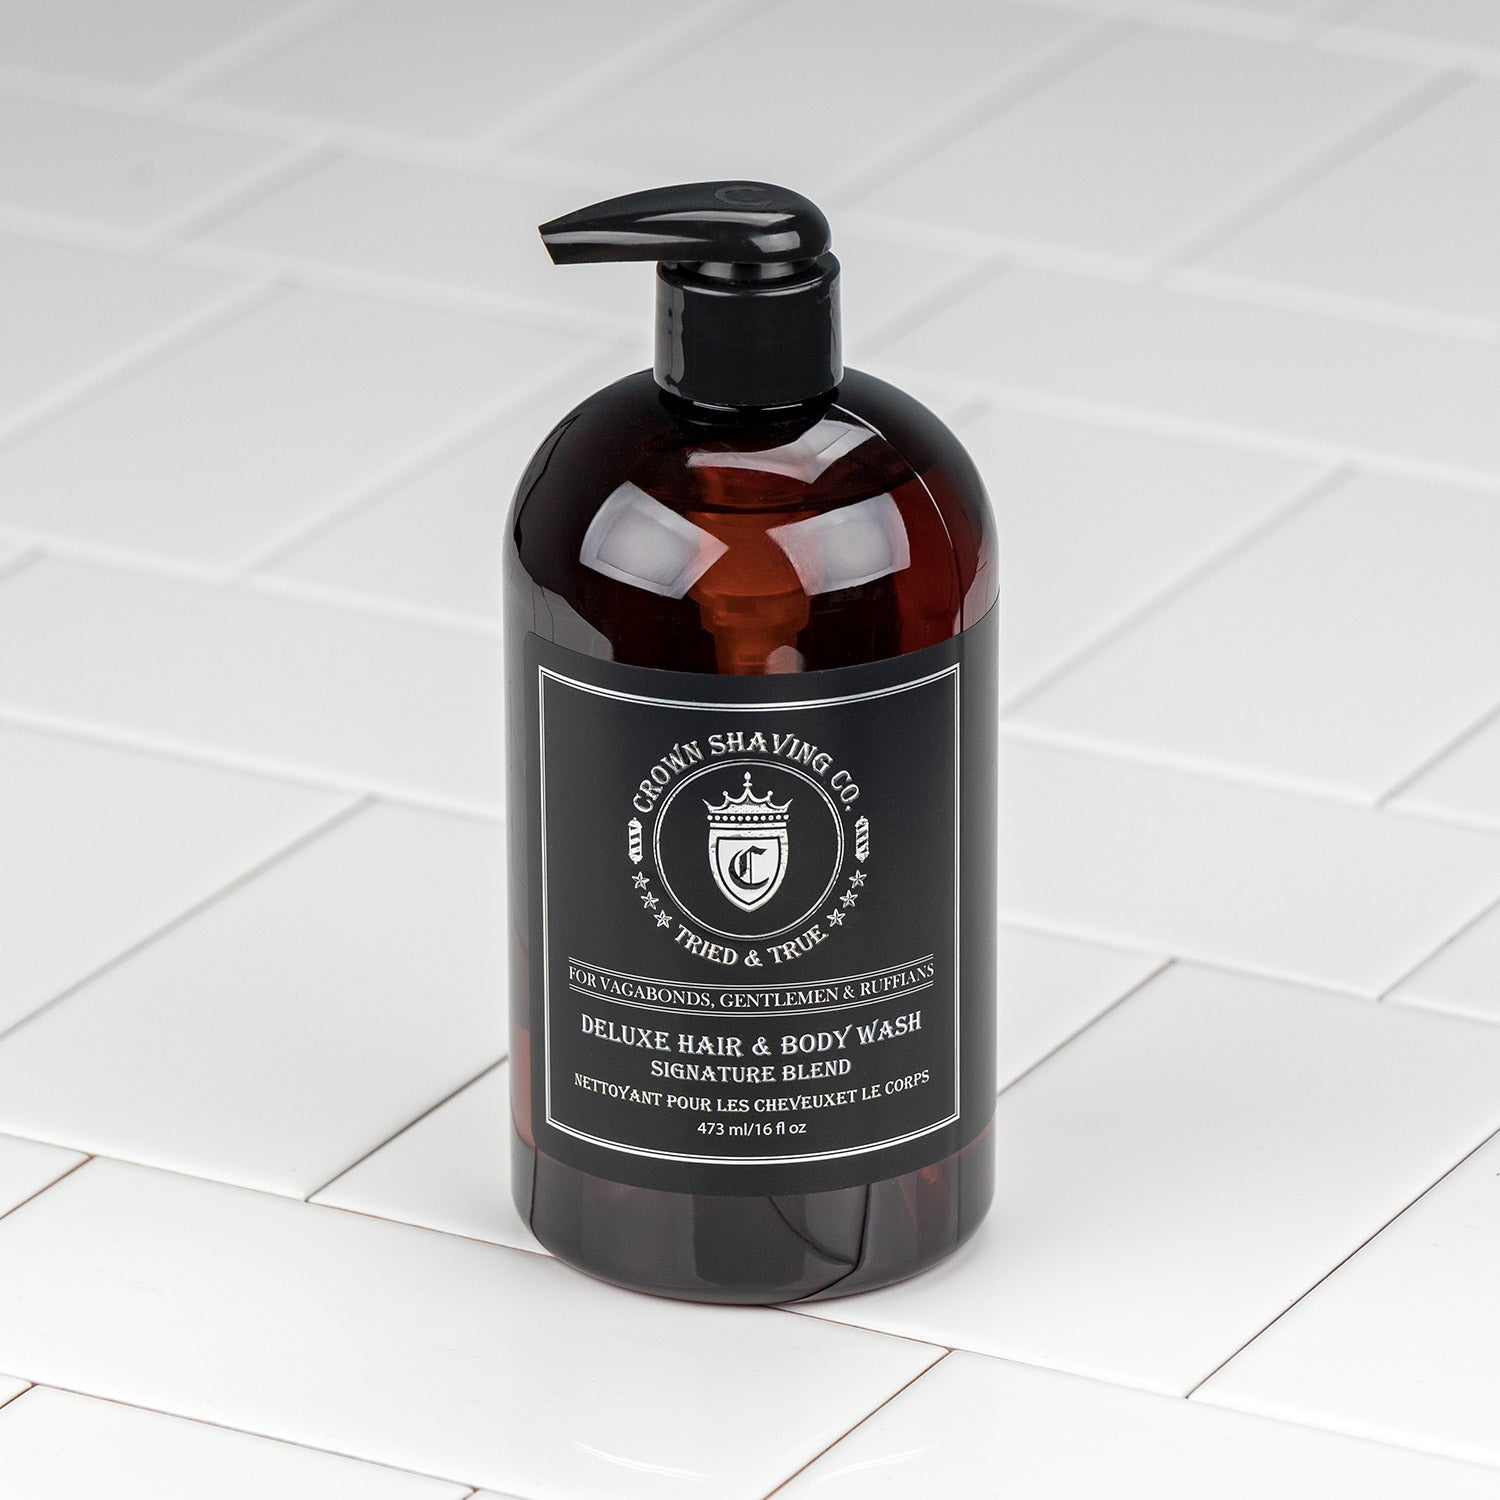 Crown Shaving Co. Hair and Body Wash - Signature Scent 473mL/16oz